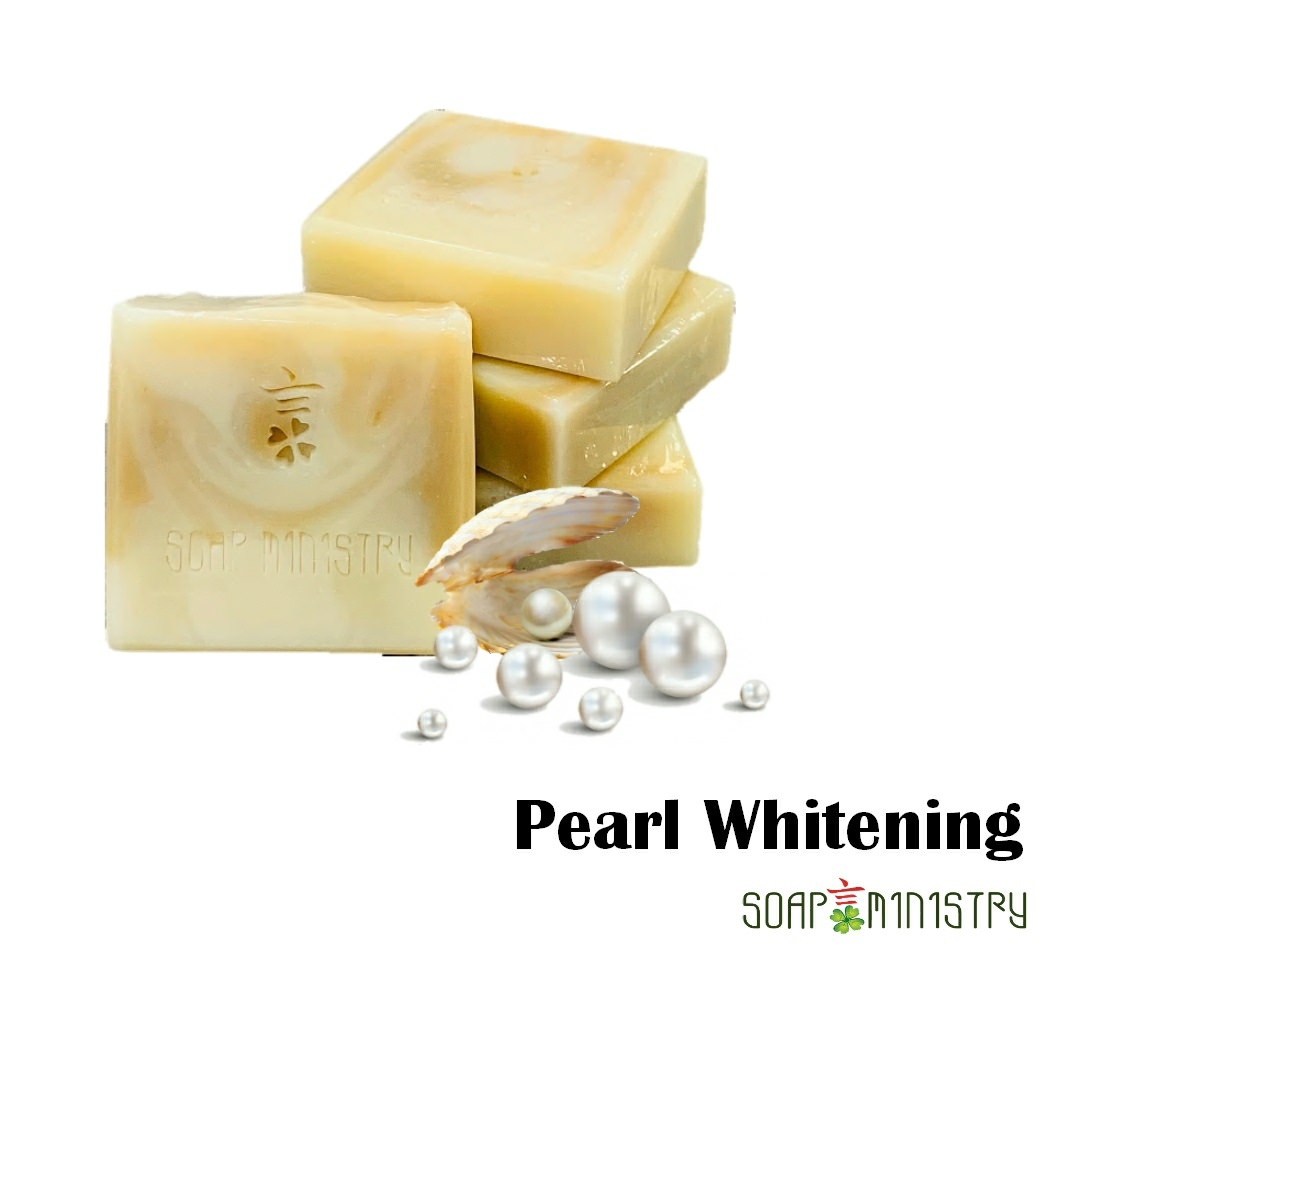 Pearl Whitening Soap